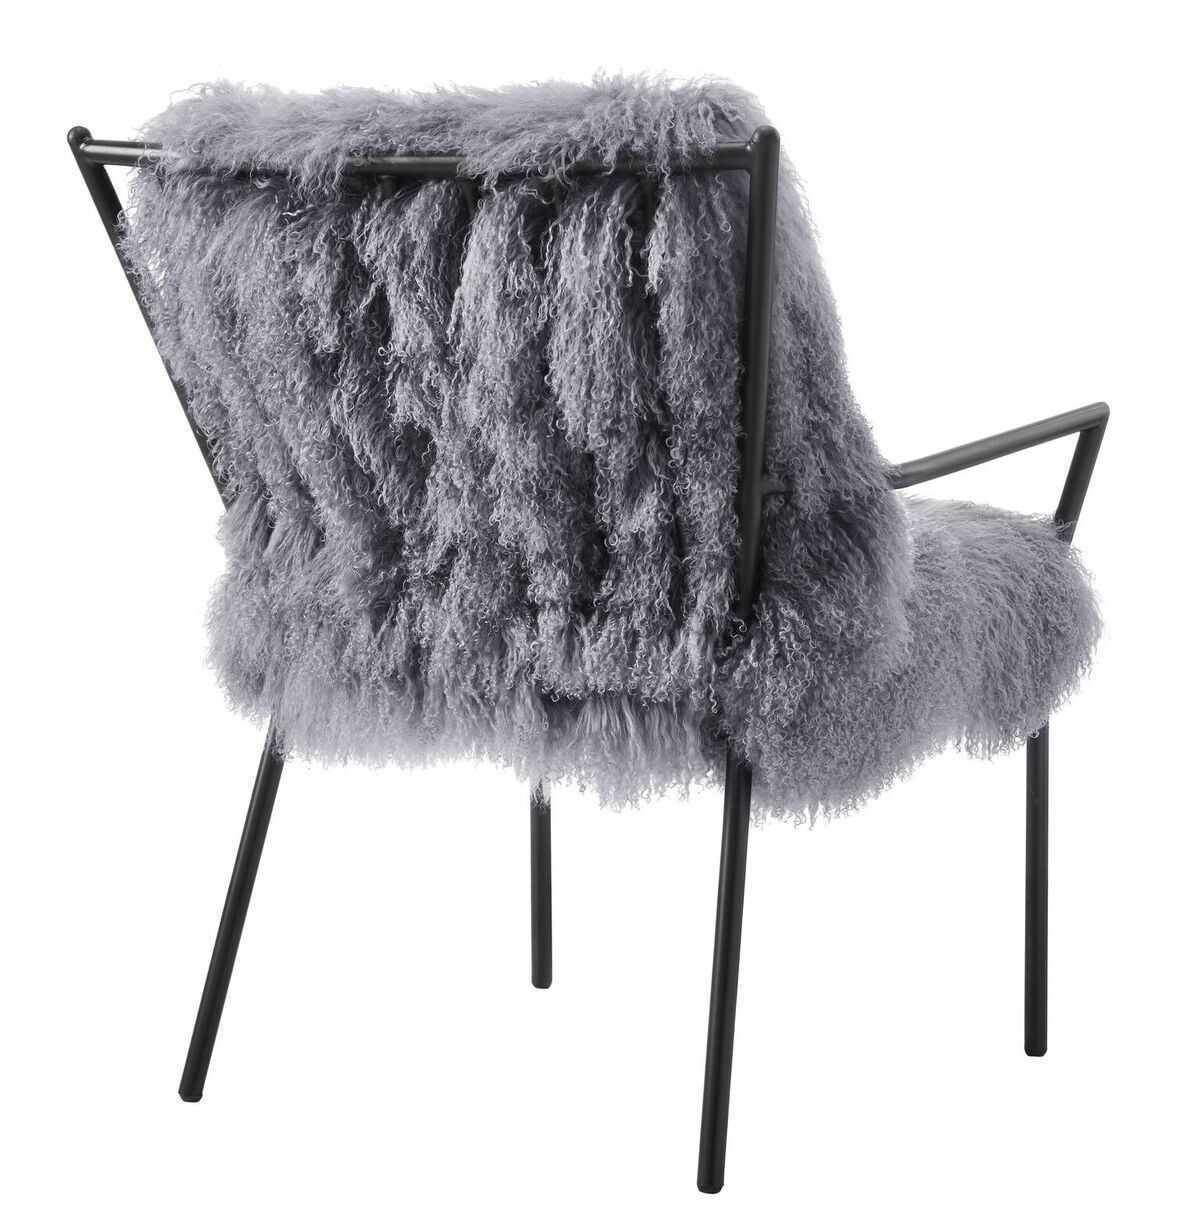 Layla Sheepskin Chair Eclectic Goods Eclectic Goods